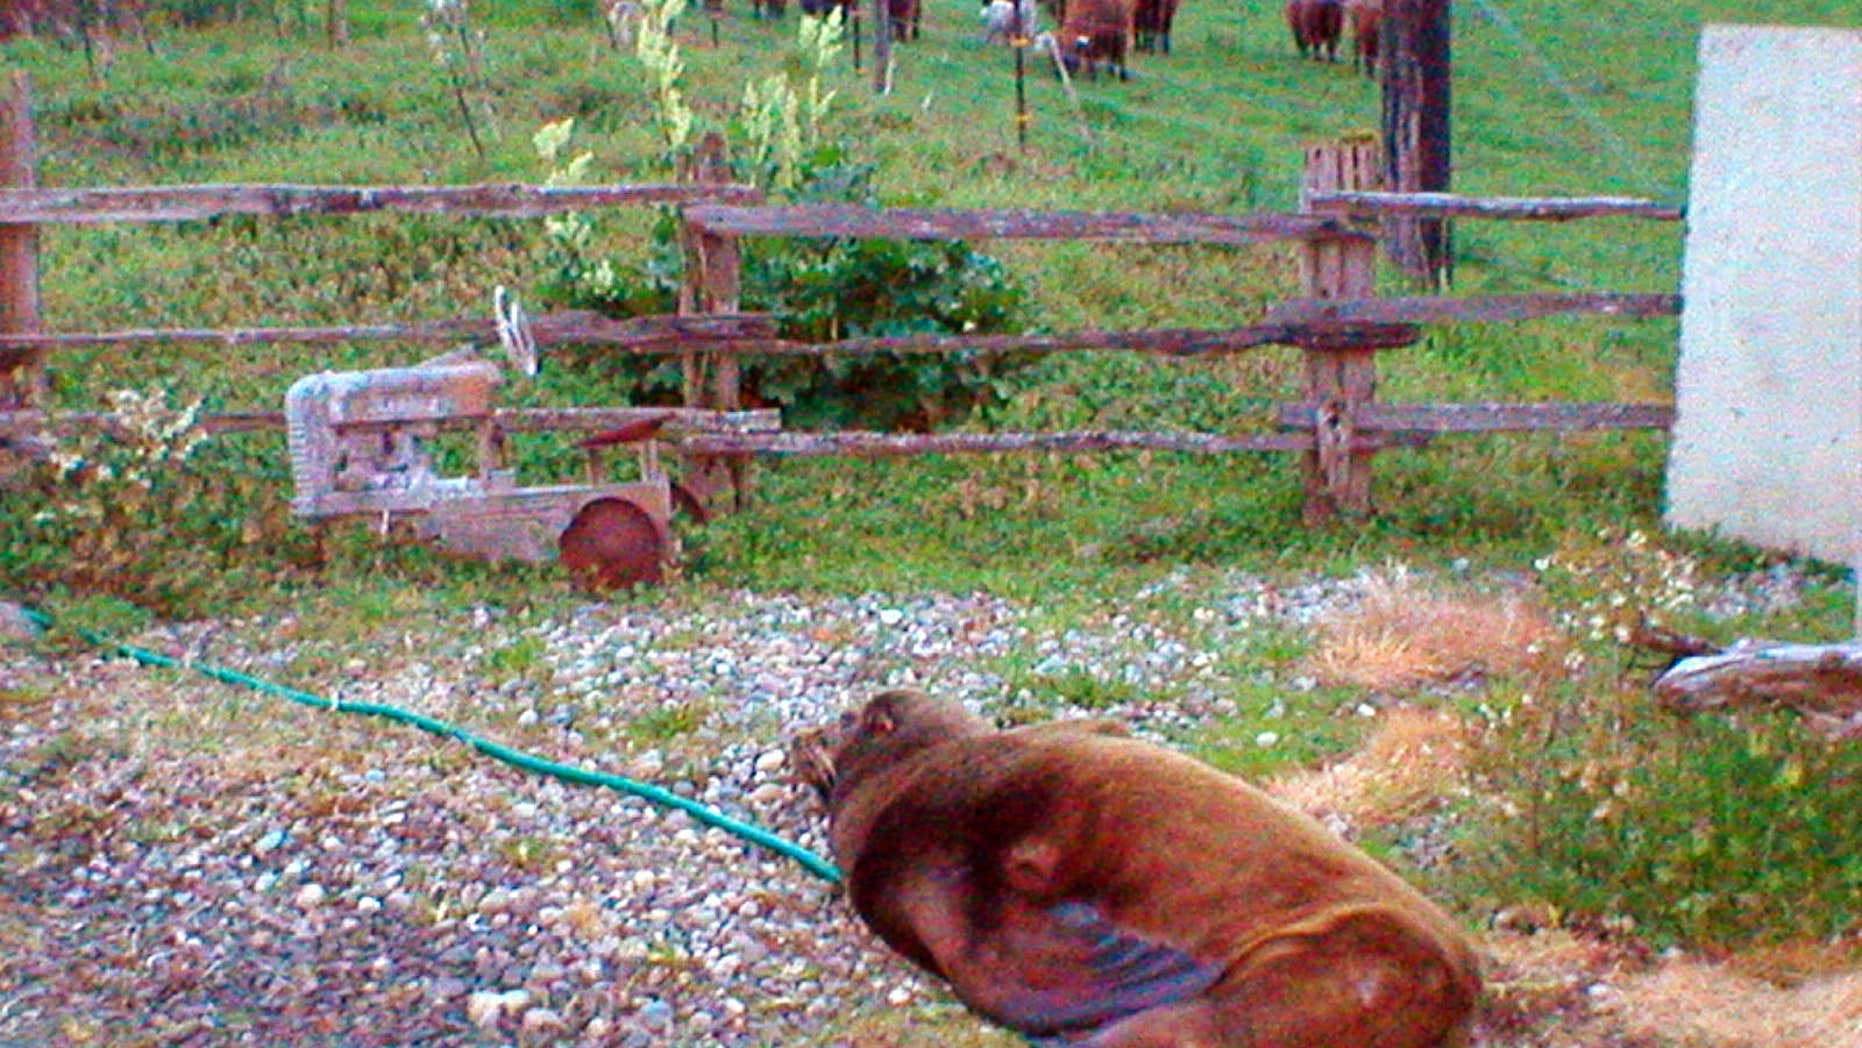 In this April 15, 2016, photo provided by the Washington Department of Fish and Wildlife, a wayward California sea lion sits in the driveway of the Soggy Bottom Farm near Oakville, Wash., about 50 miles from the ocean.